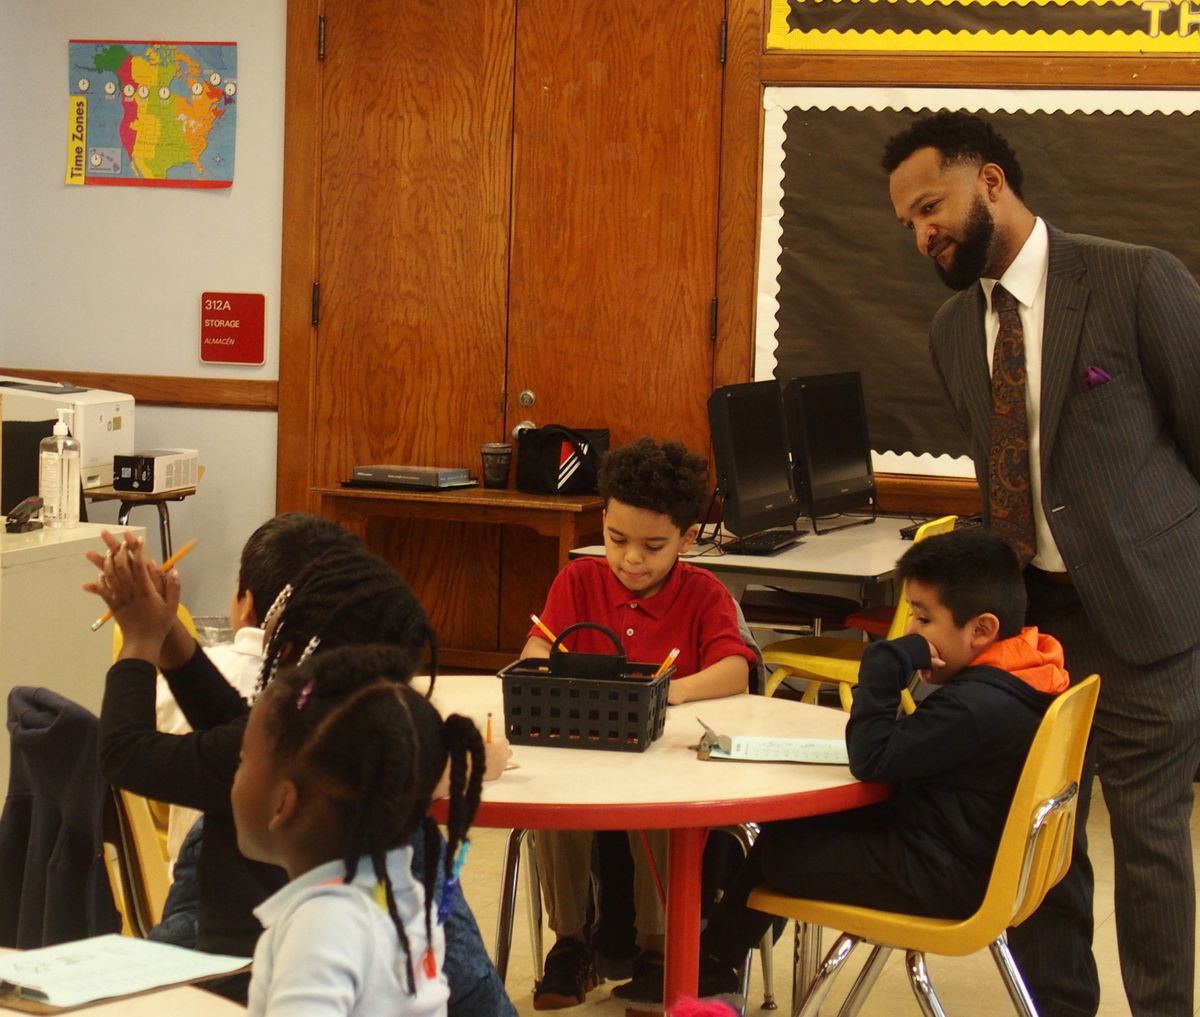 Antonio Burt, the district's chief academic officer, observes a new gifted education CLUE class at Treadwell Elementary.